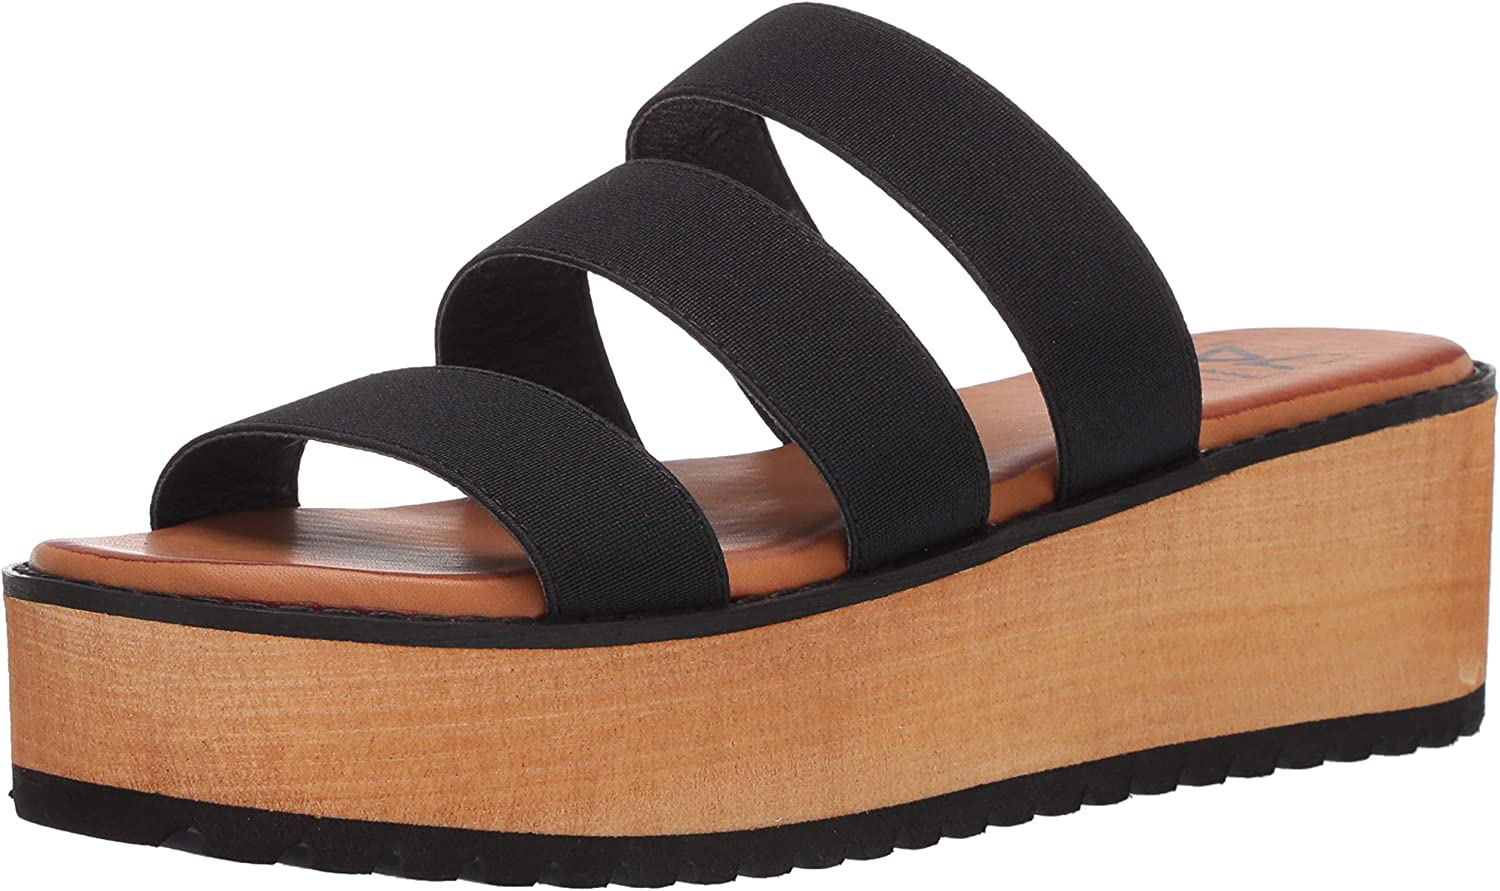 Dirty Laundry Women's Wedge Sandal